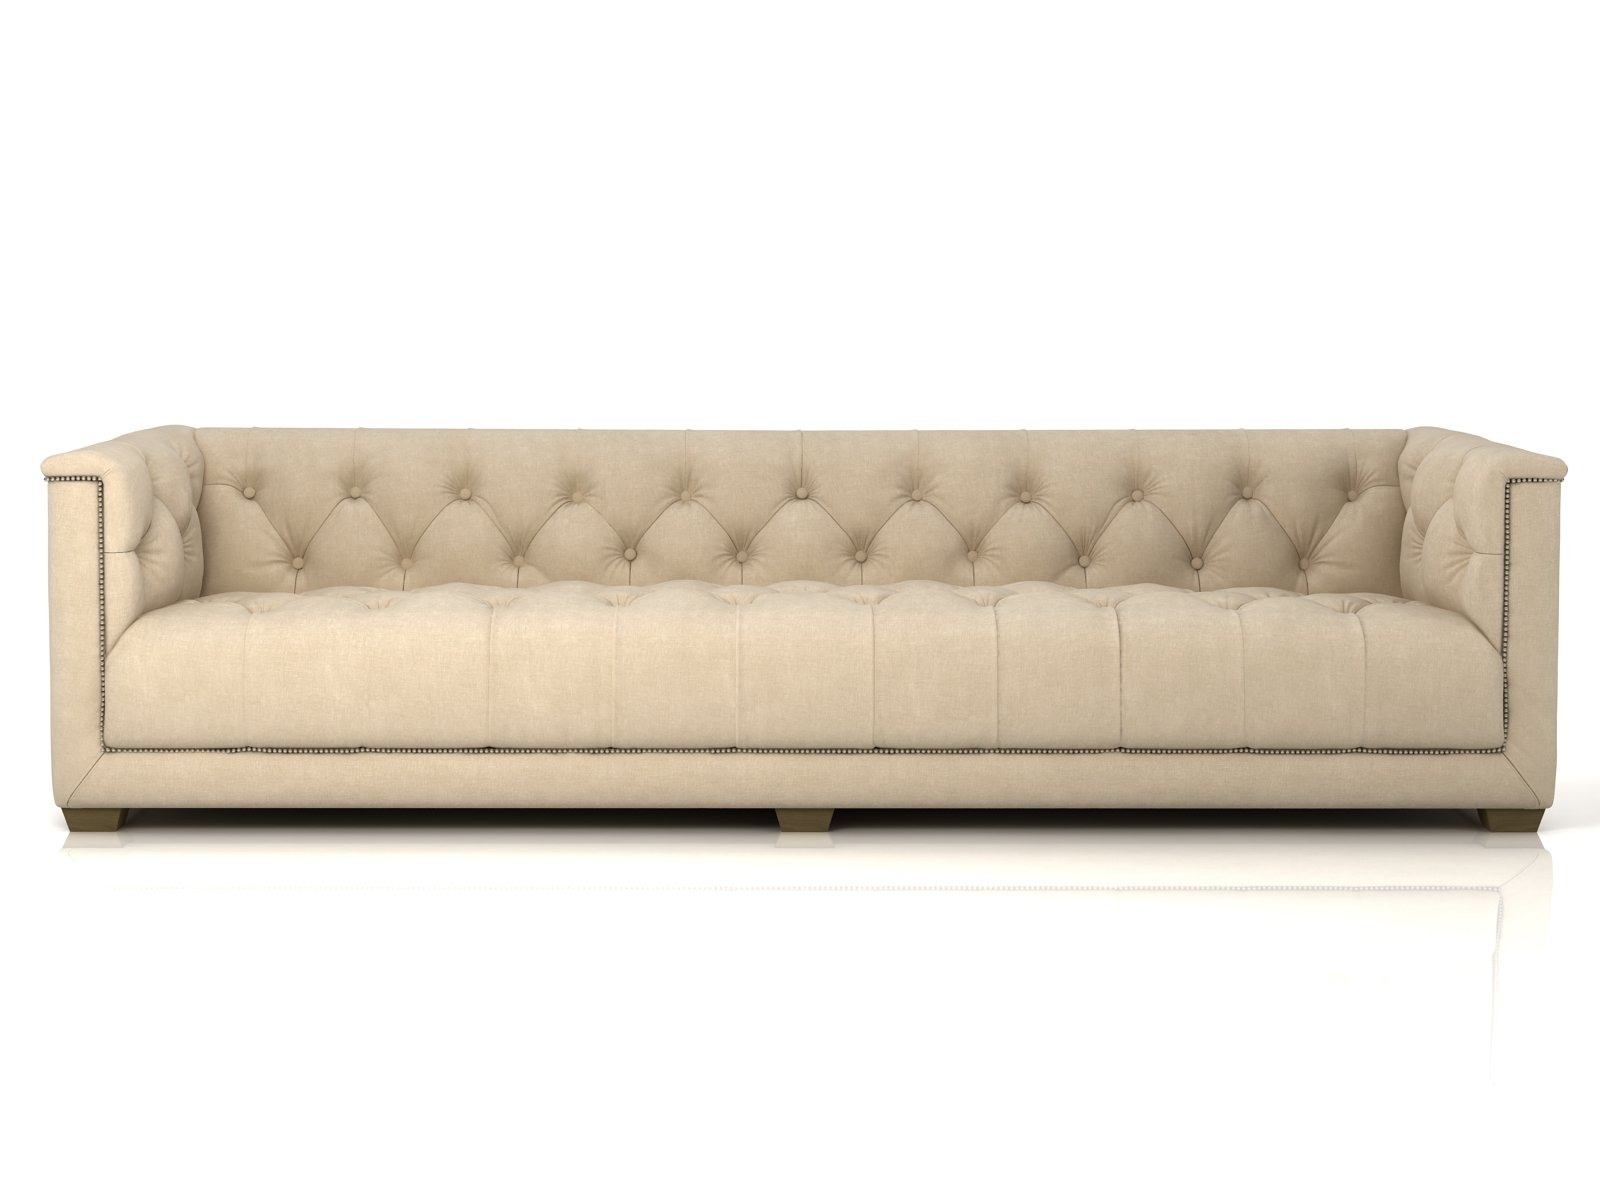 savoy leather sofa restoration hardware average cost of bed 3d model